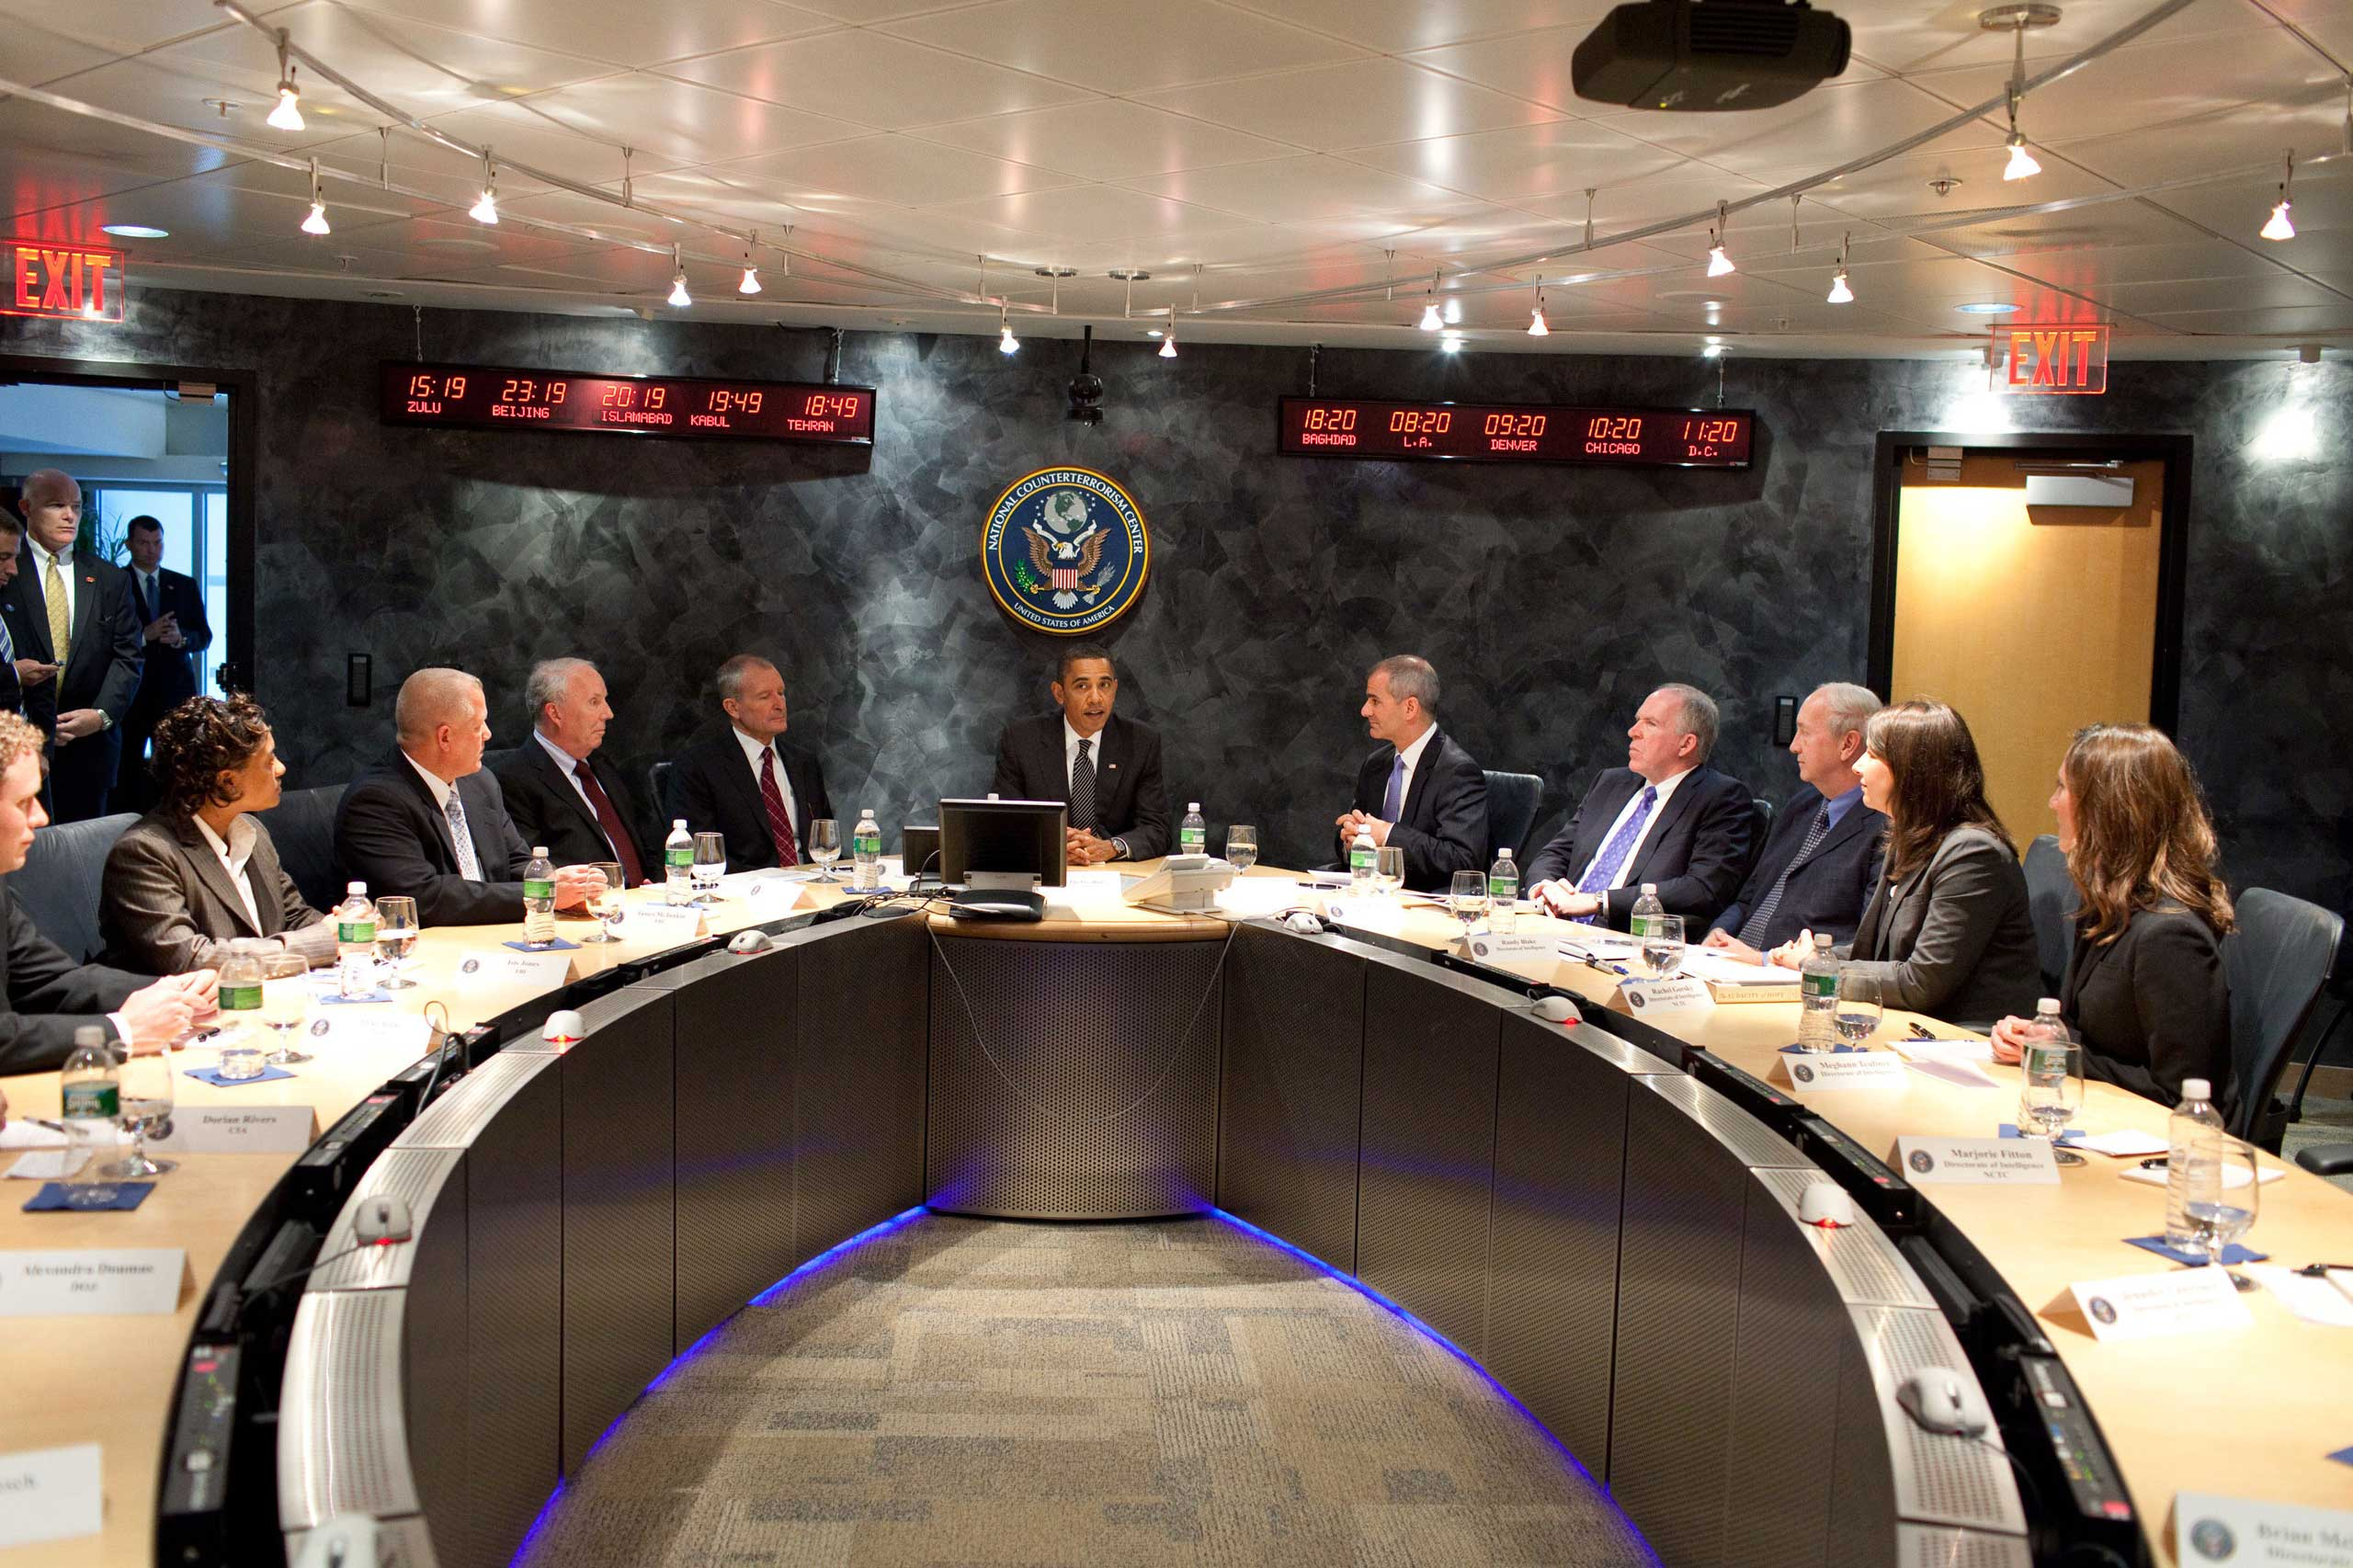 President Barack Obama meets with NCTC Director Michael Leiter, center right, leadership and analysts in the Secure Video Teleconference Room at the National Counterterrorism Center in McLean, Va, on Oct. 6, 2009.